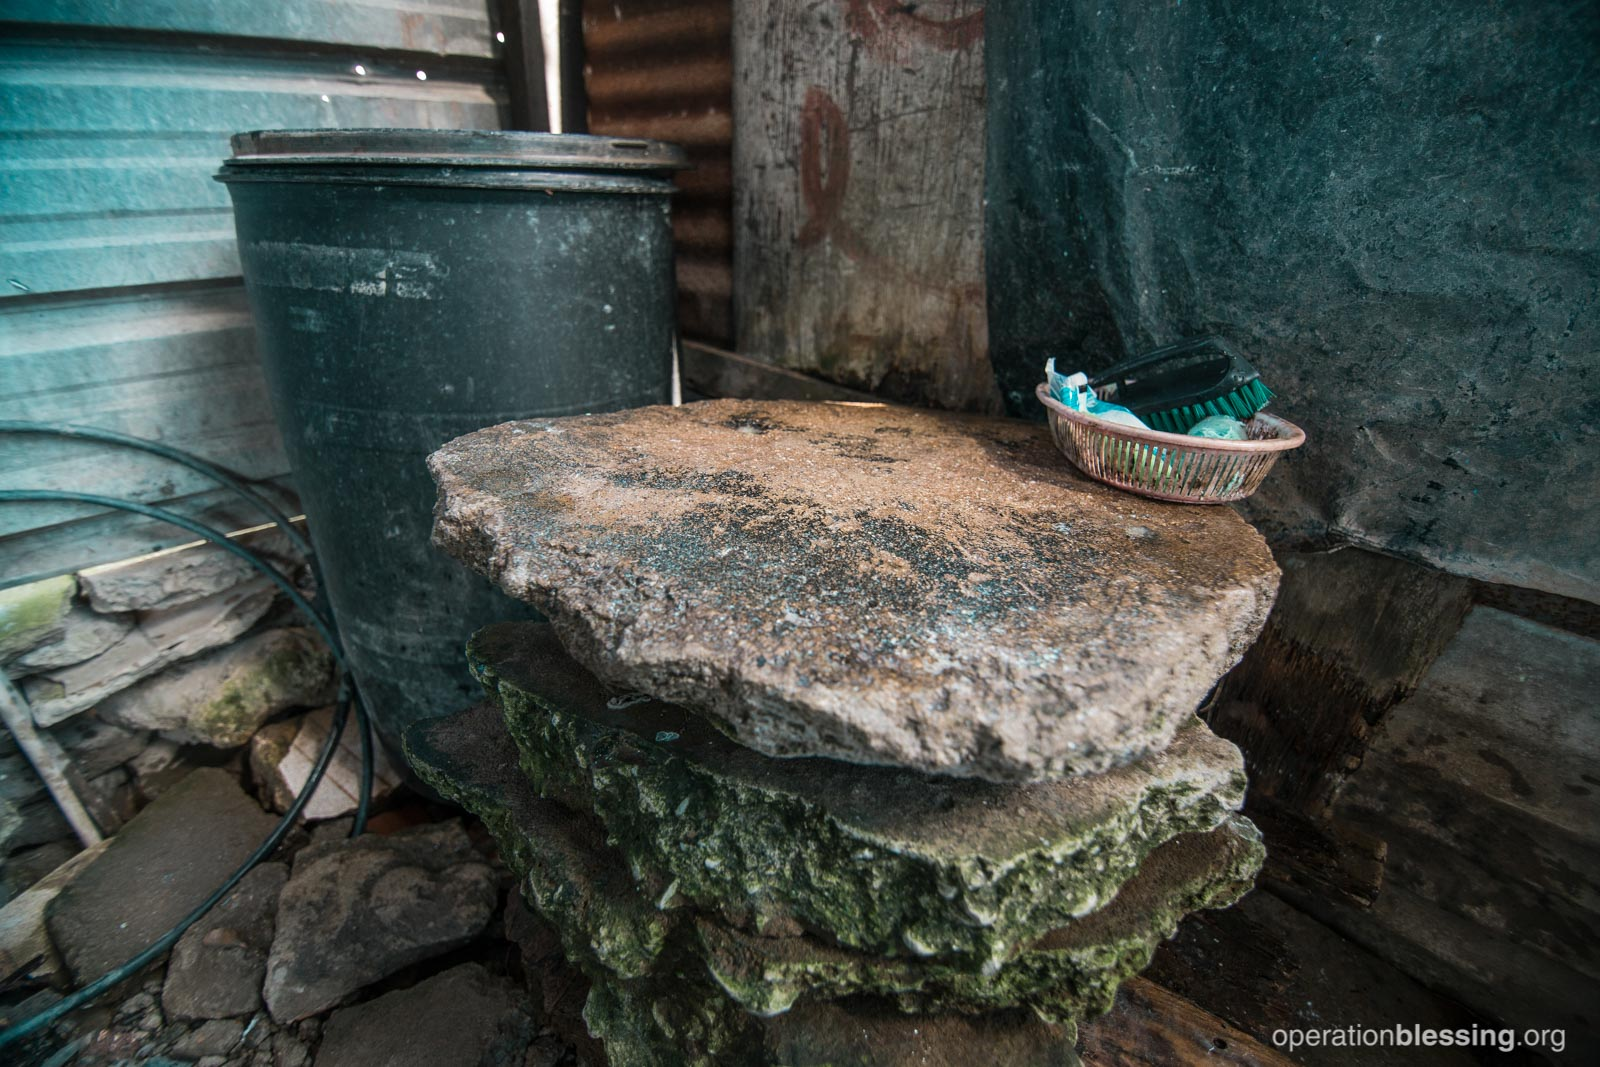 Mercedes used to wash her clothes in this old stone basin, which was a breeding ground for Zika-carrying mosquitoes to grow.